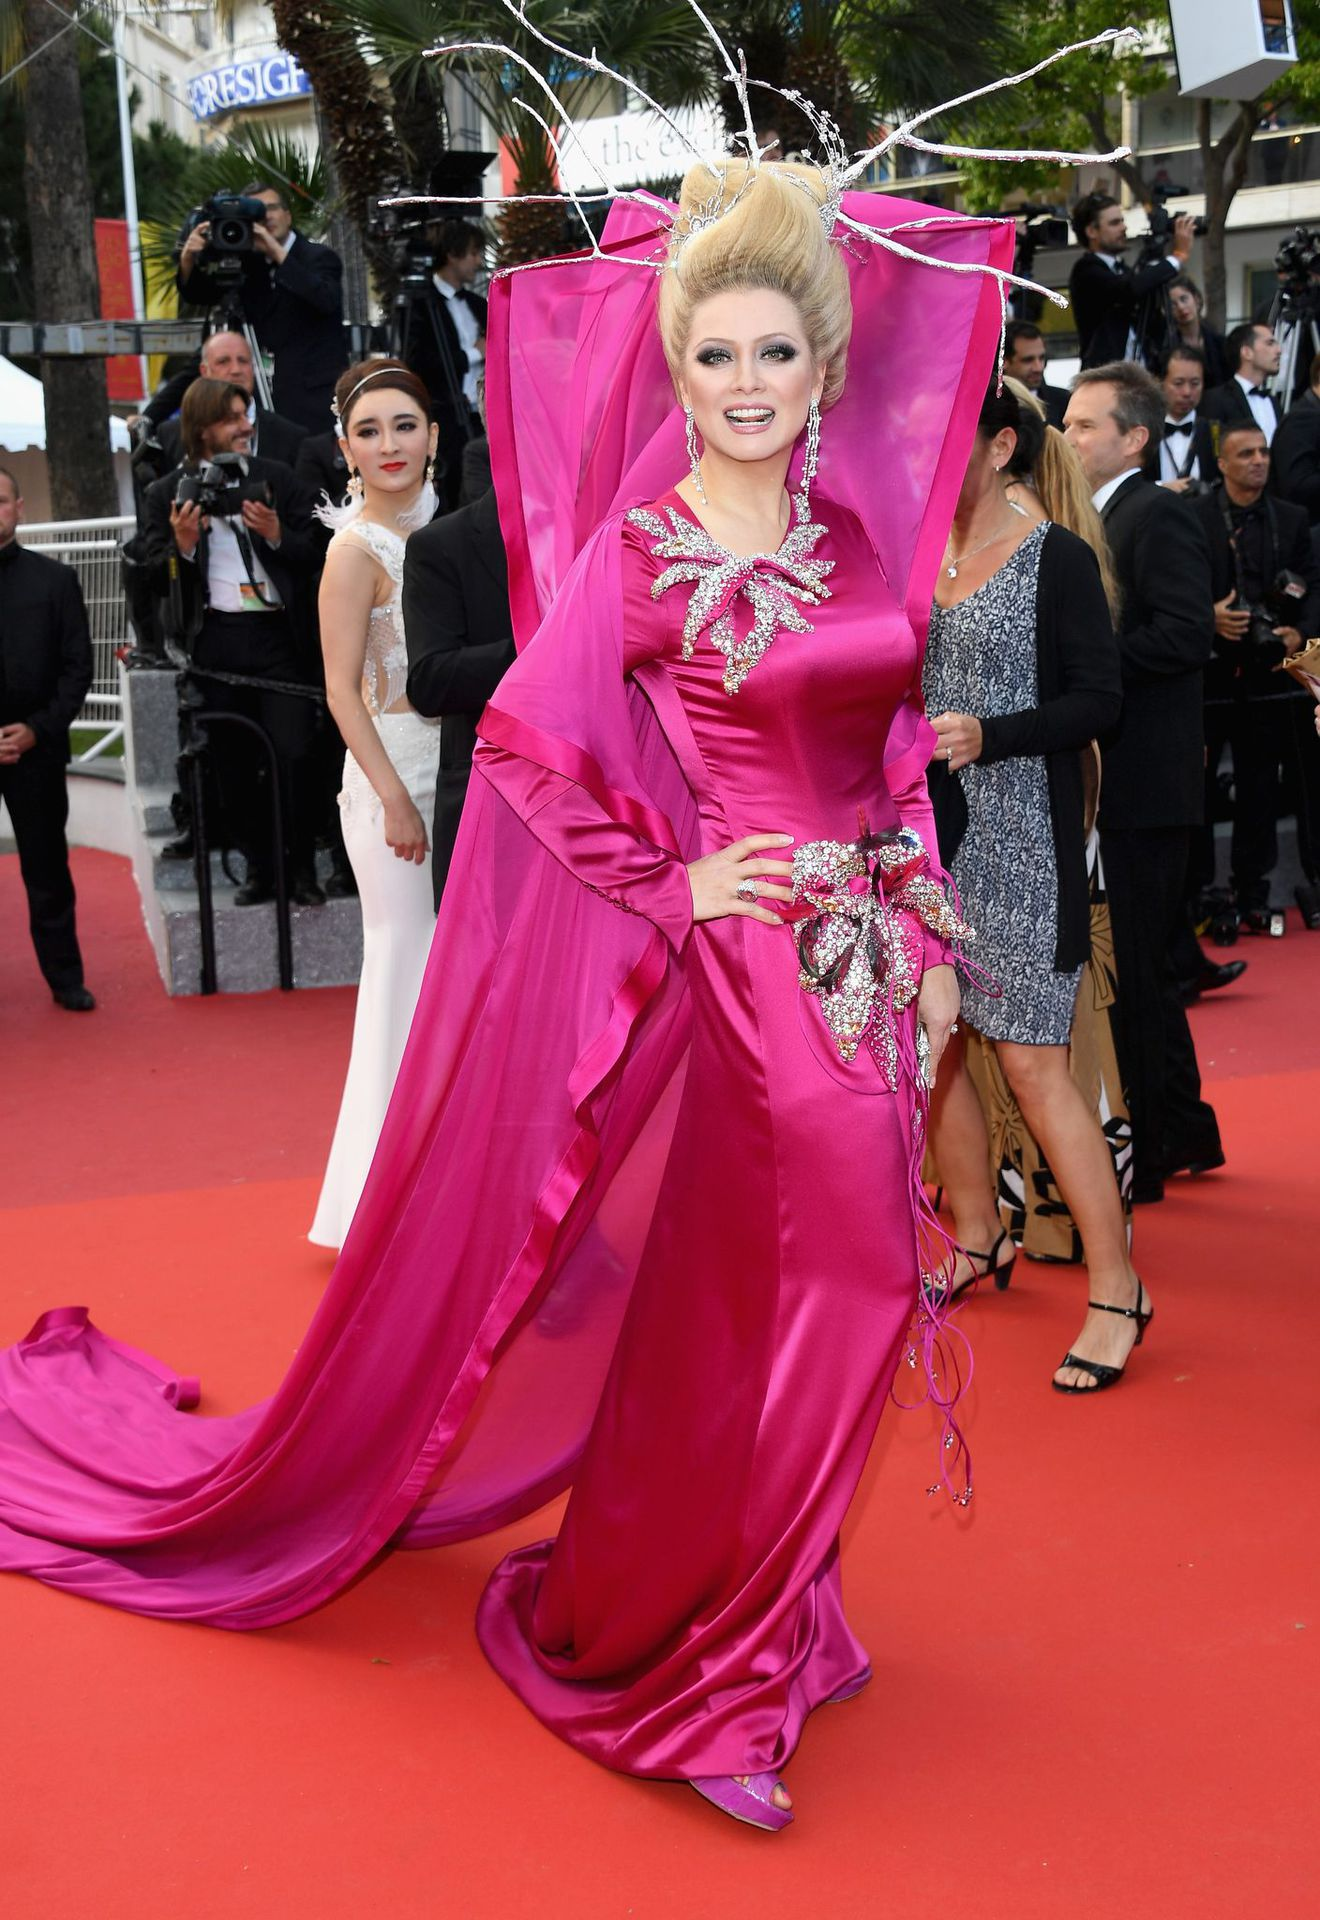 Ornamented Pink Dress for the red carpet of Cannes